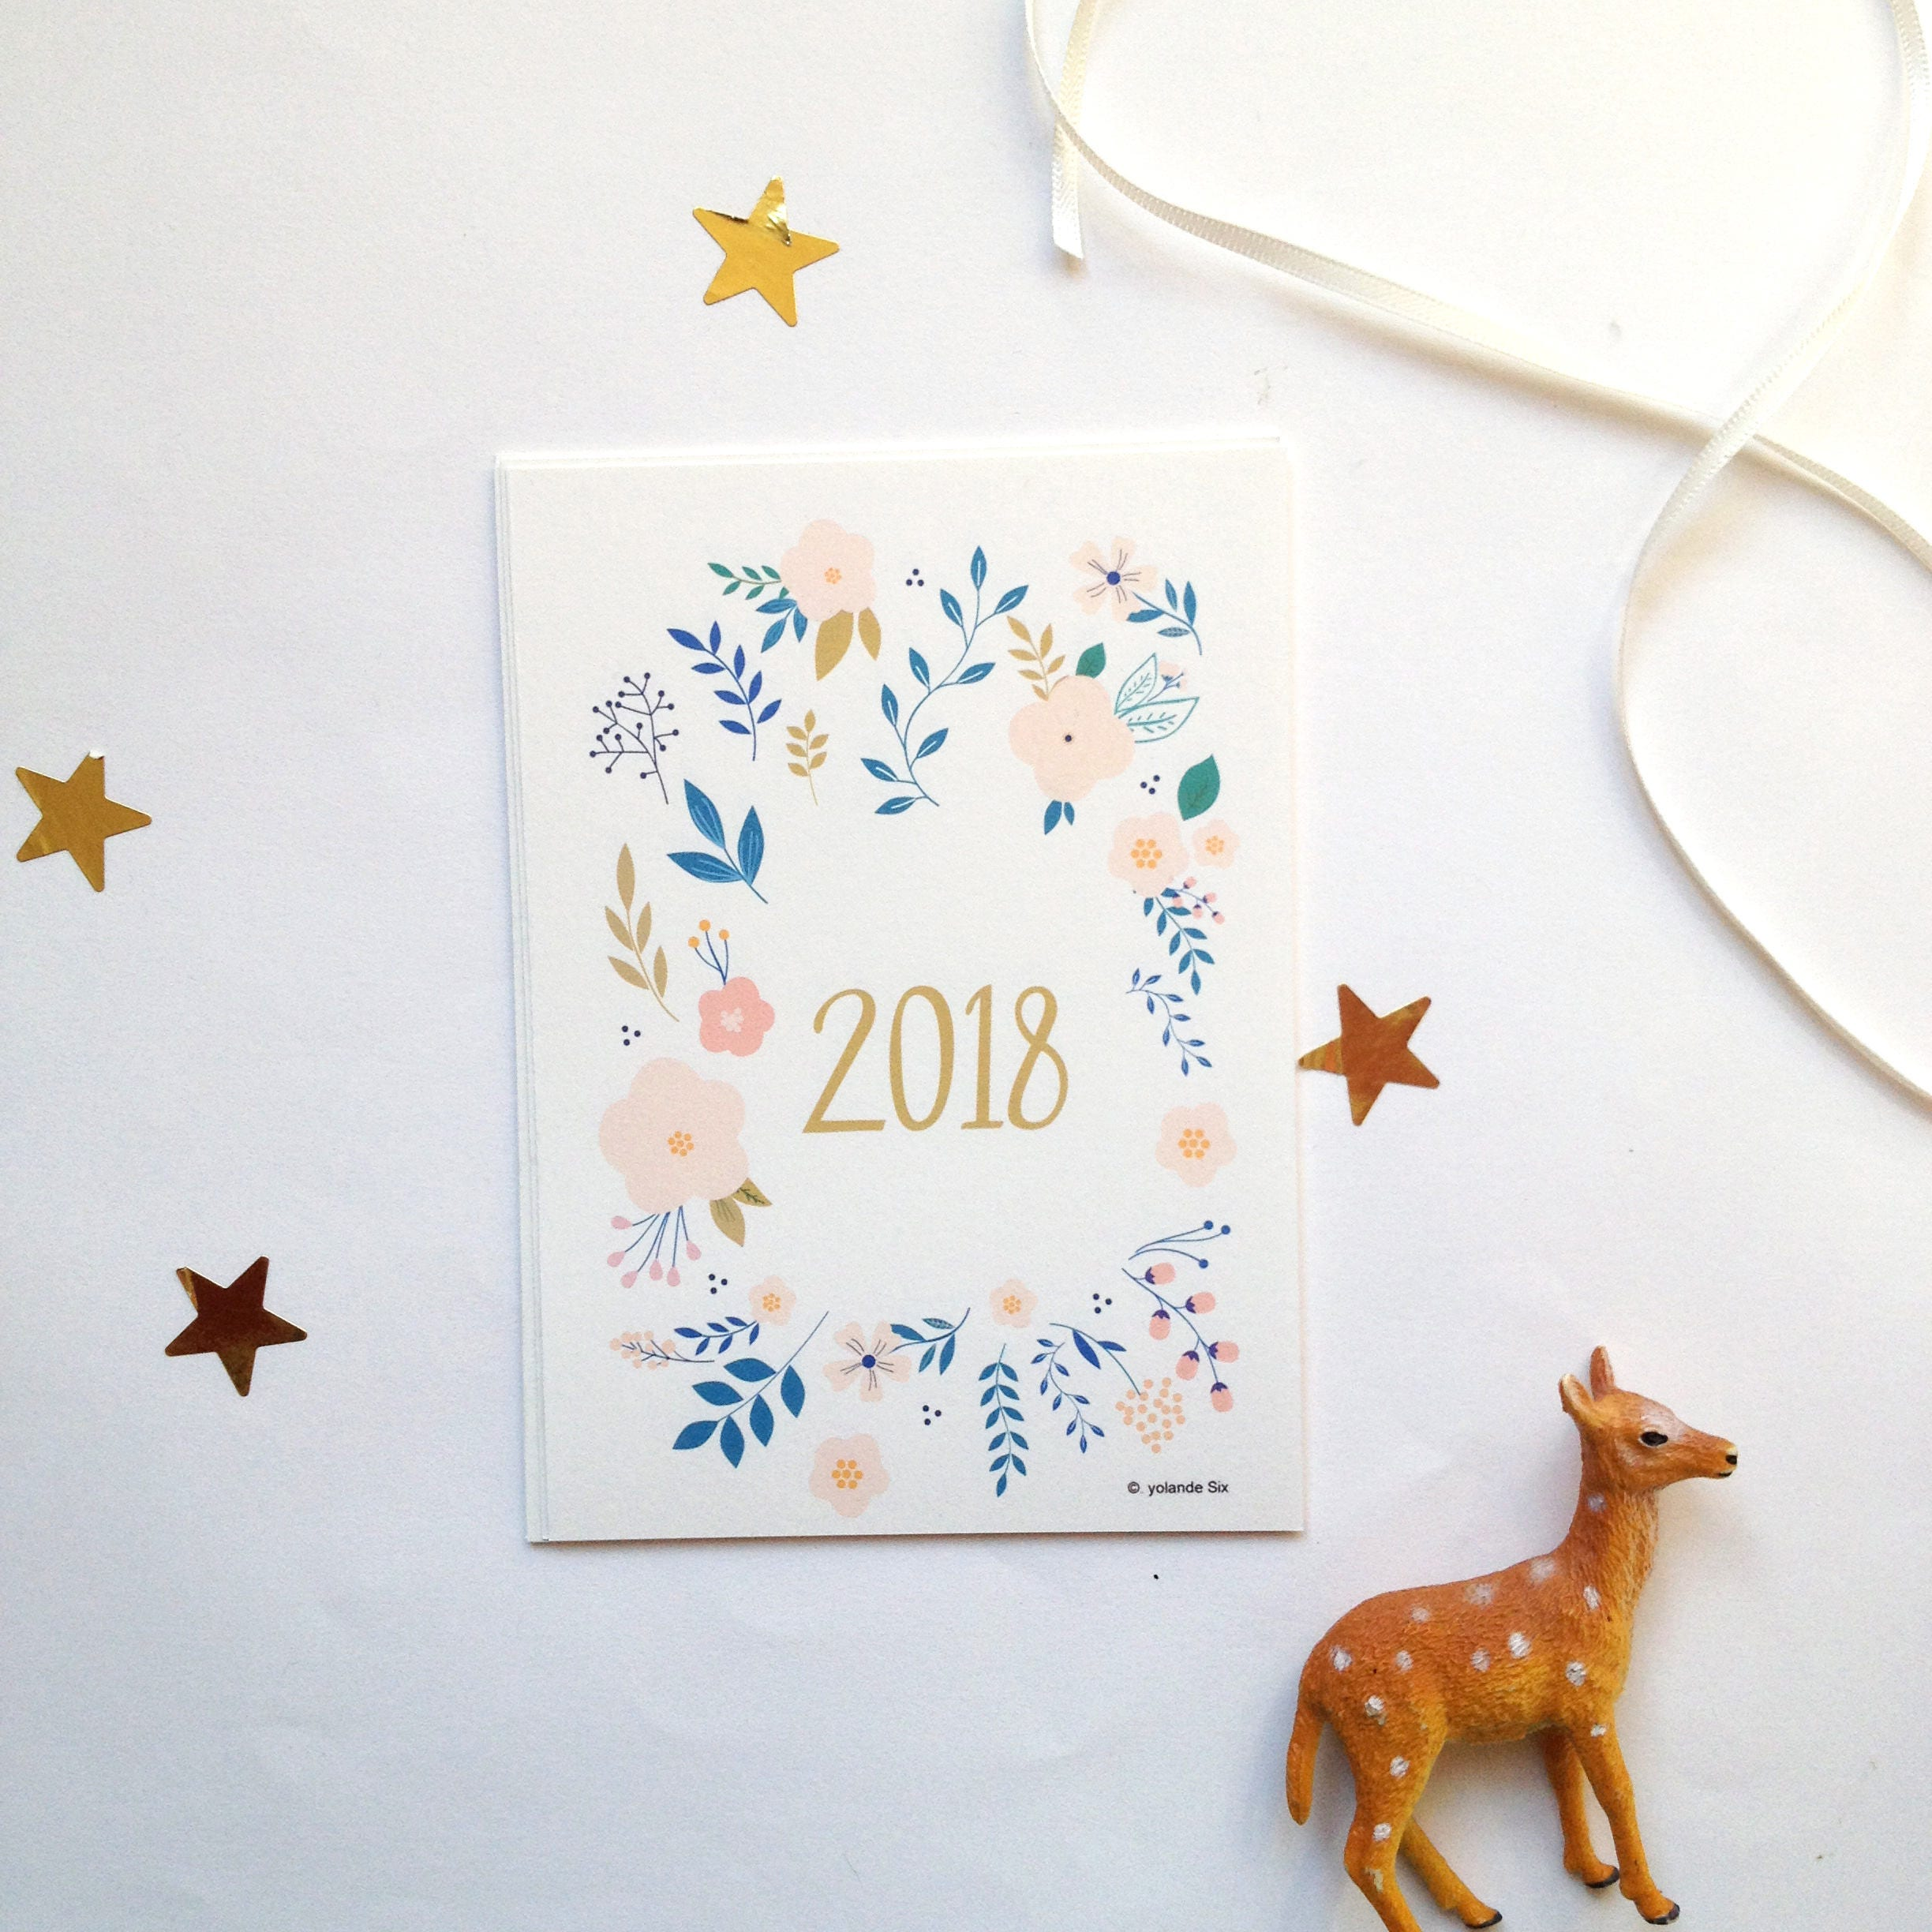 2018 New Years Cards 2018 New Year's Holiday Cards